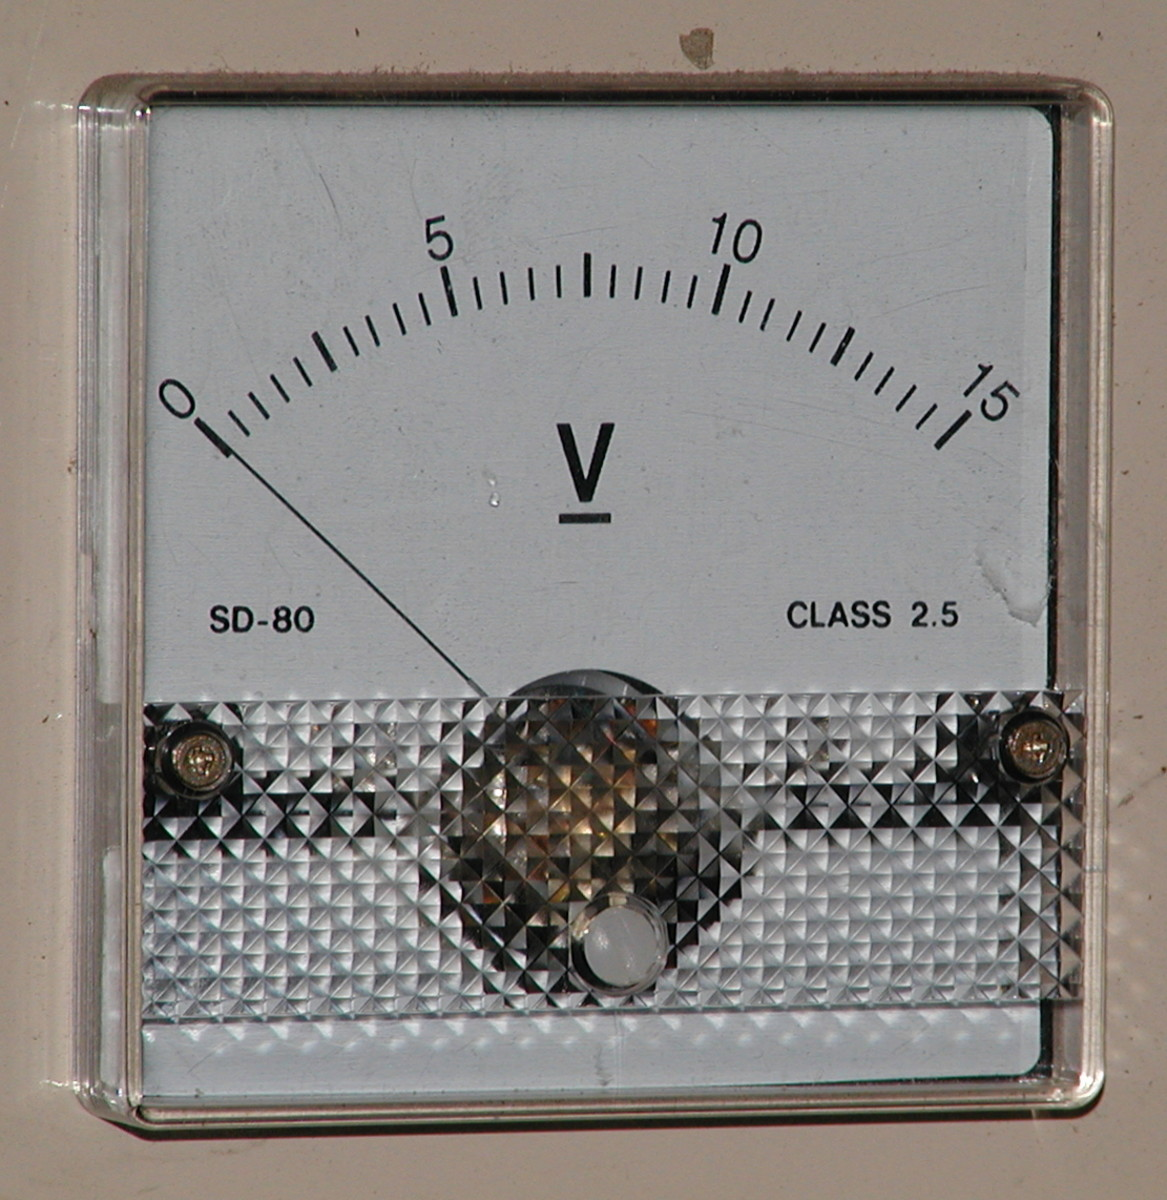 Another analog voltmeter